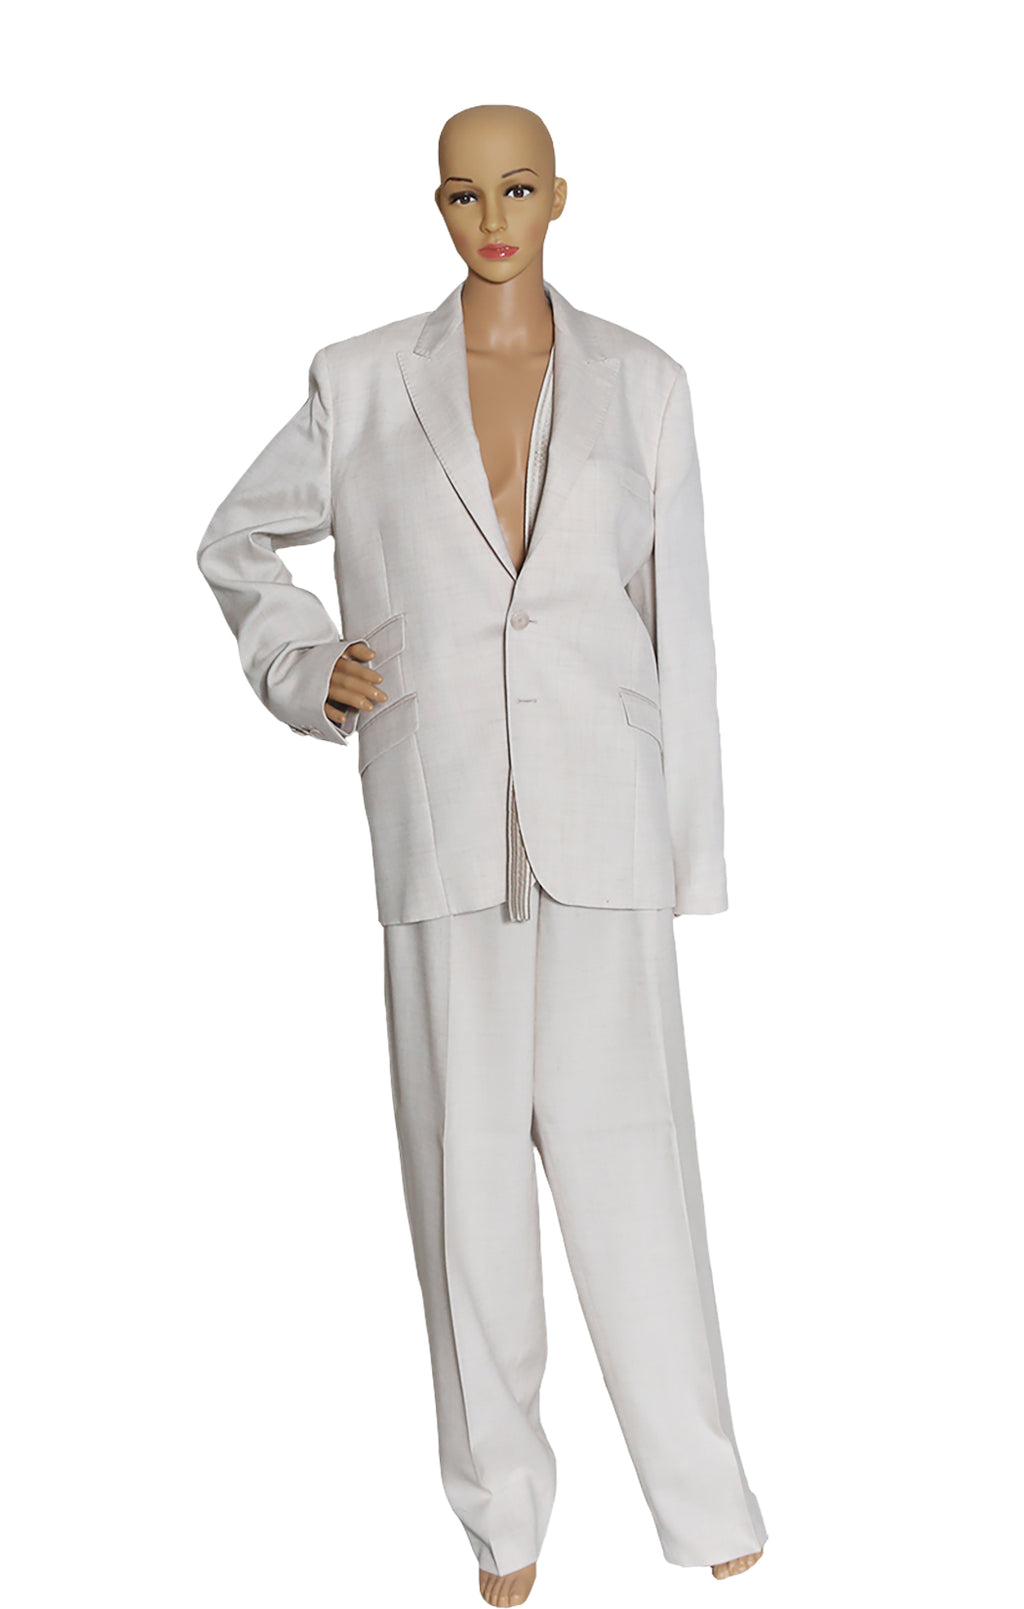 Front view of STELLA McCARTNEY  Beige Linen Pantsuit Blazer Size: IT 40 (US 6), Pant Size: IT 42 (US 8)